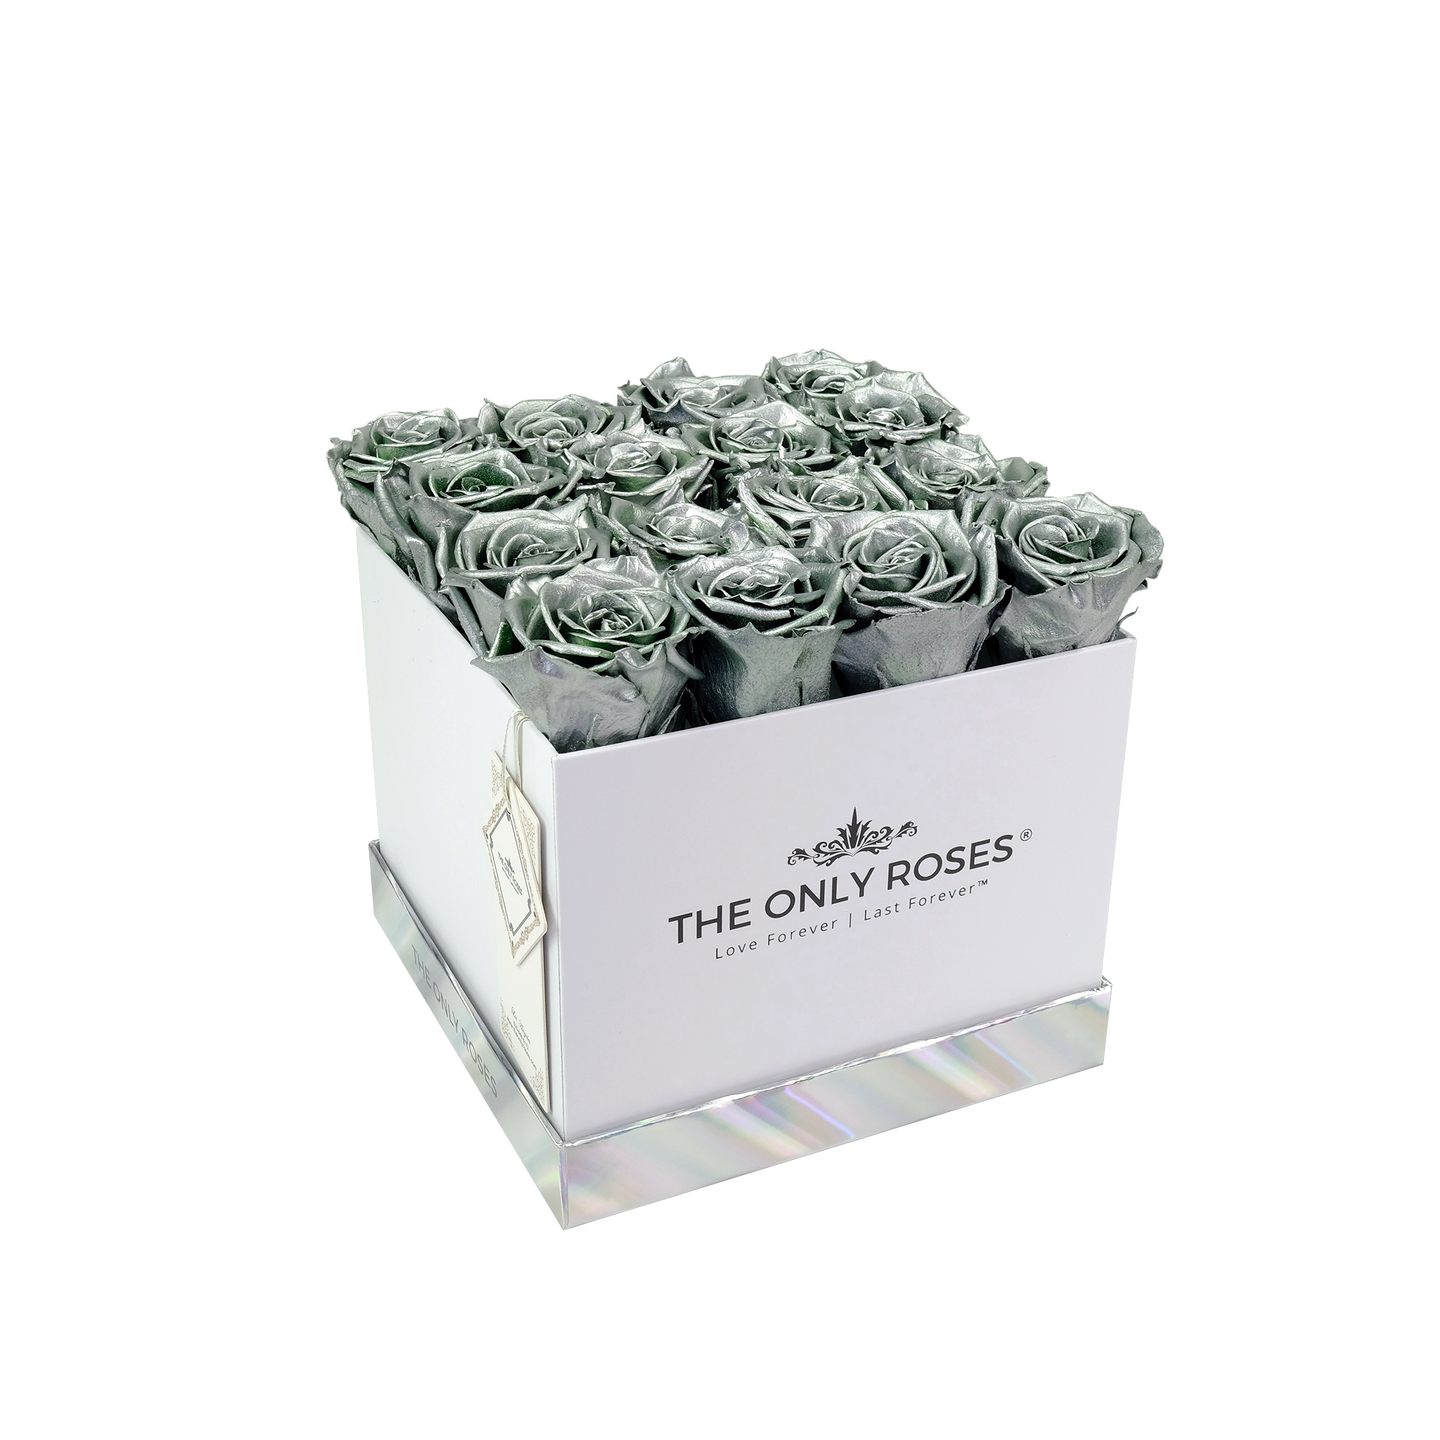 Silver Preserved Roses | Square White Huggy Rose Box - The Only Roses